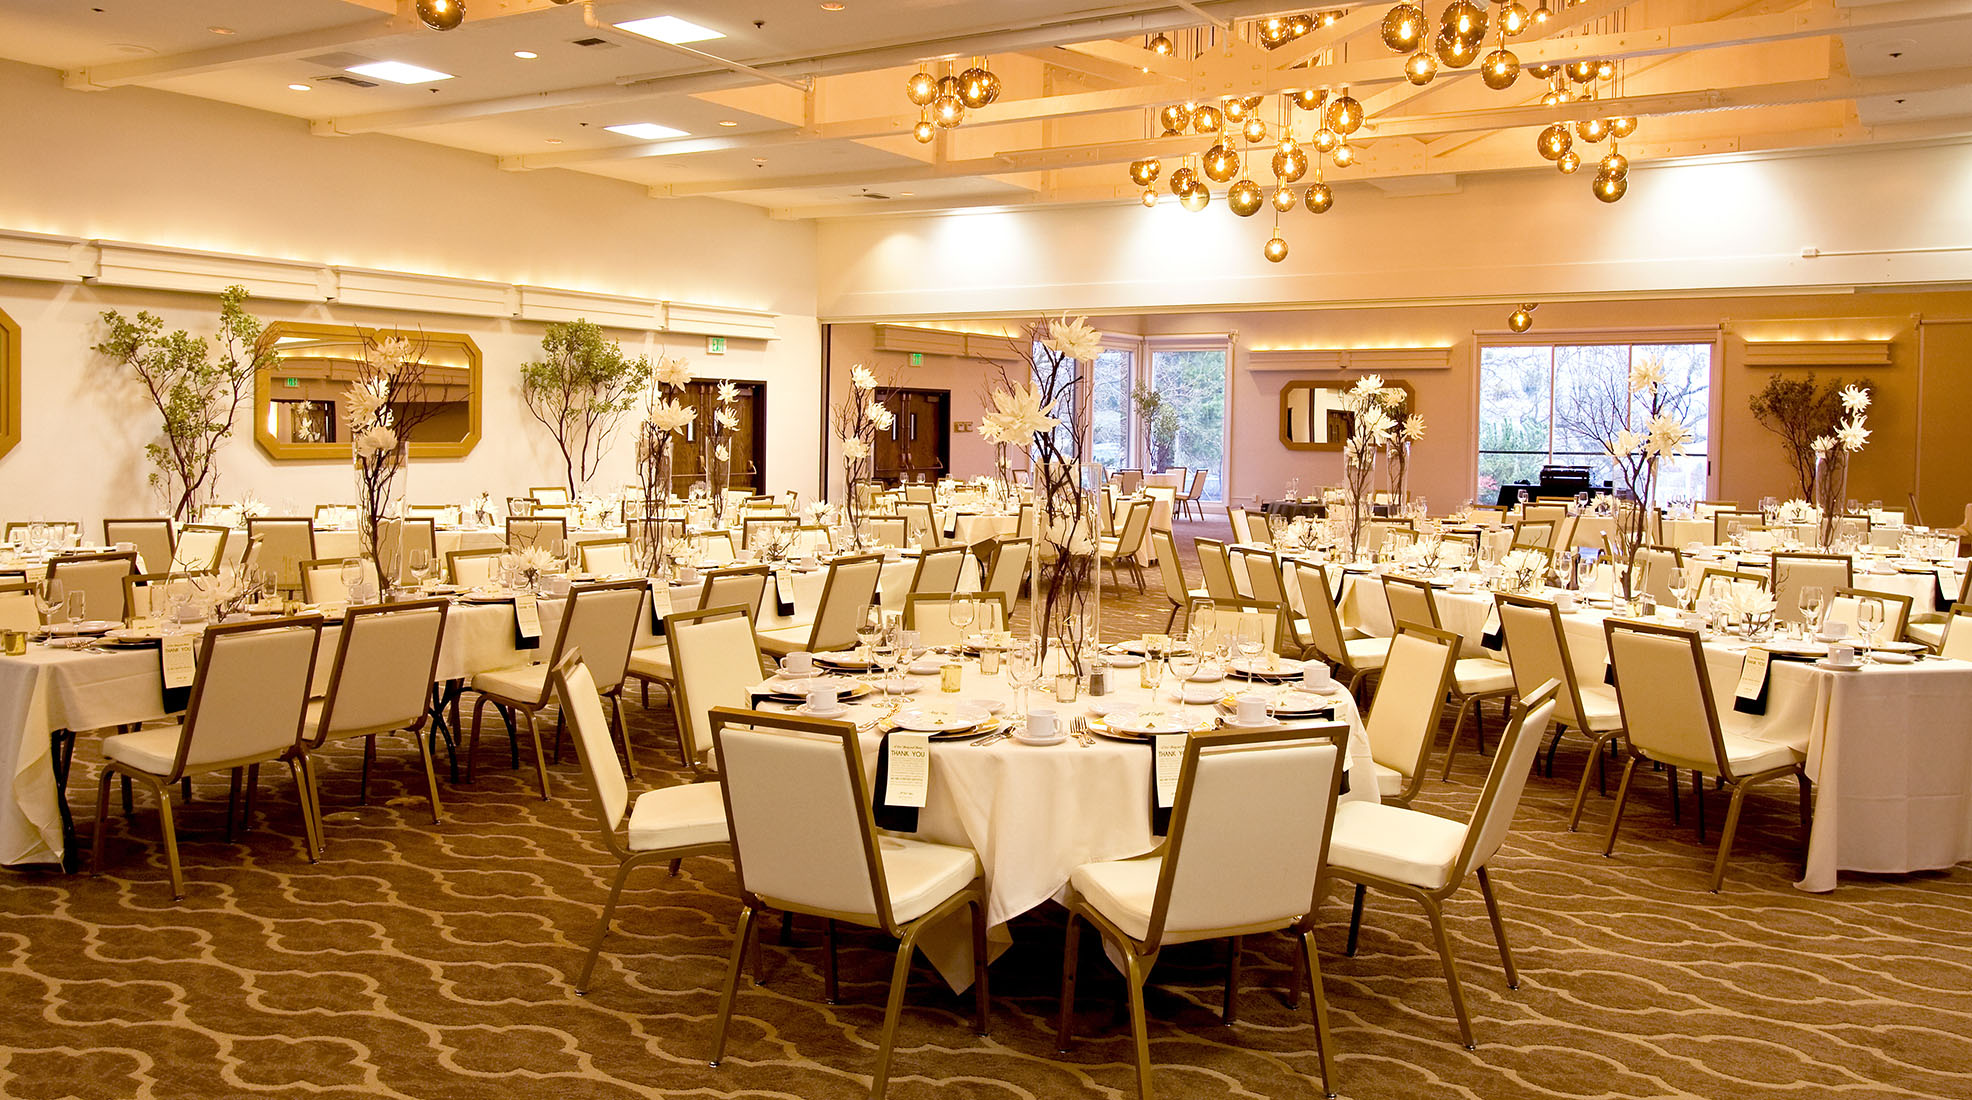 CORPORATE EVENTS - Ashland Hills Hotel & Suites